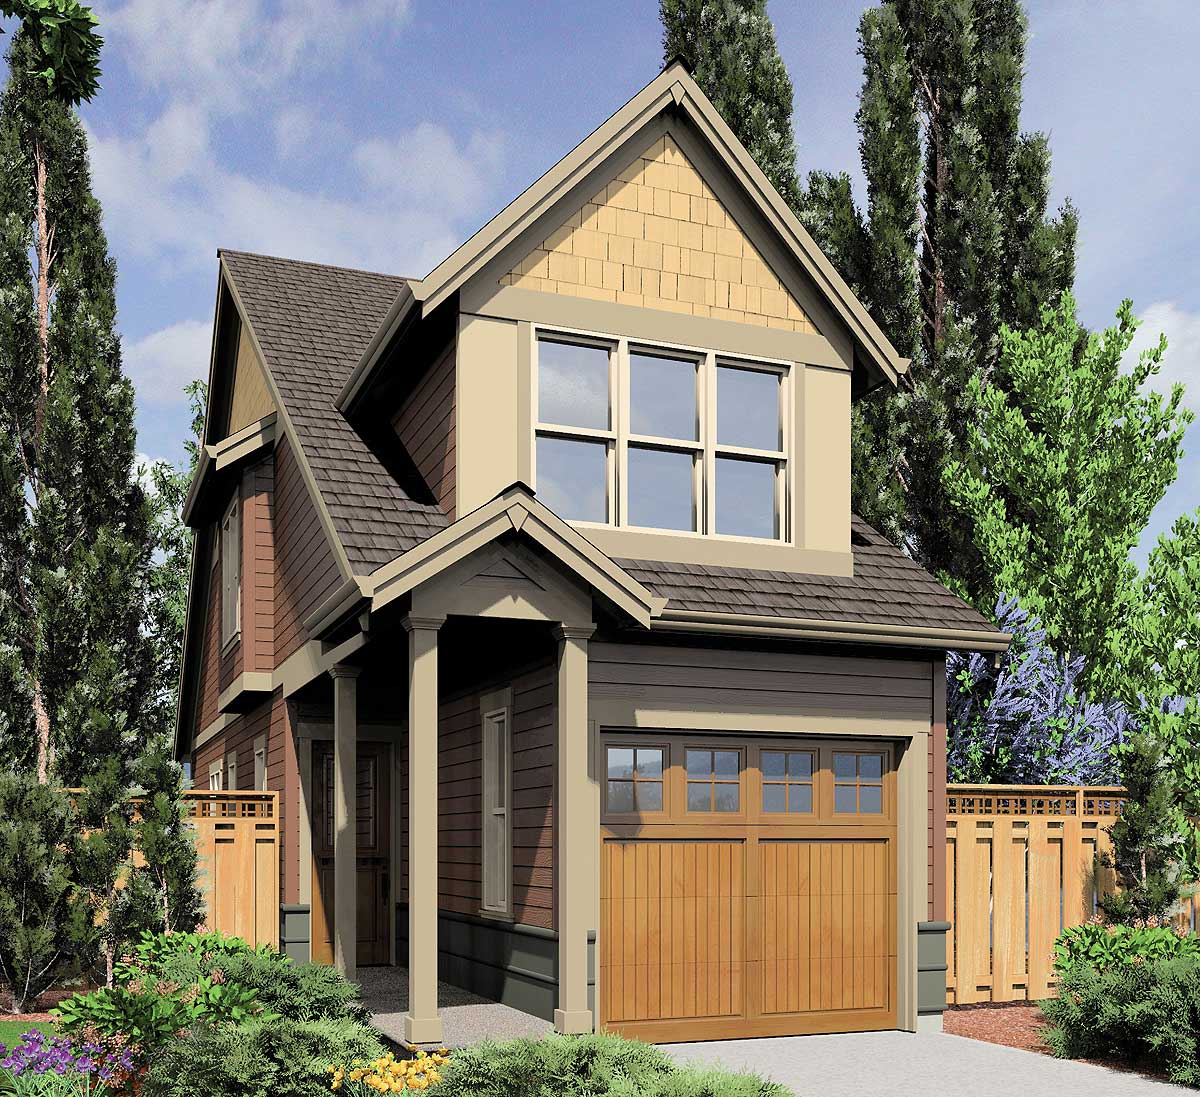 Sliver Of A Home Plan 69574am Architectural Designs